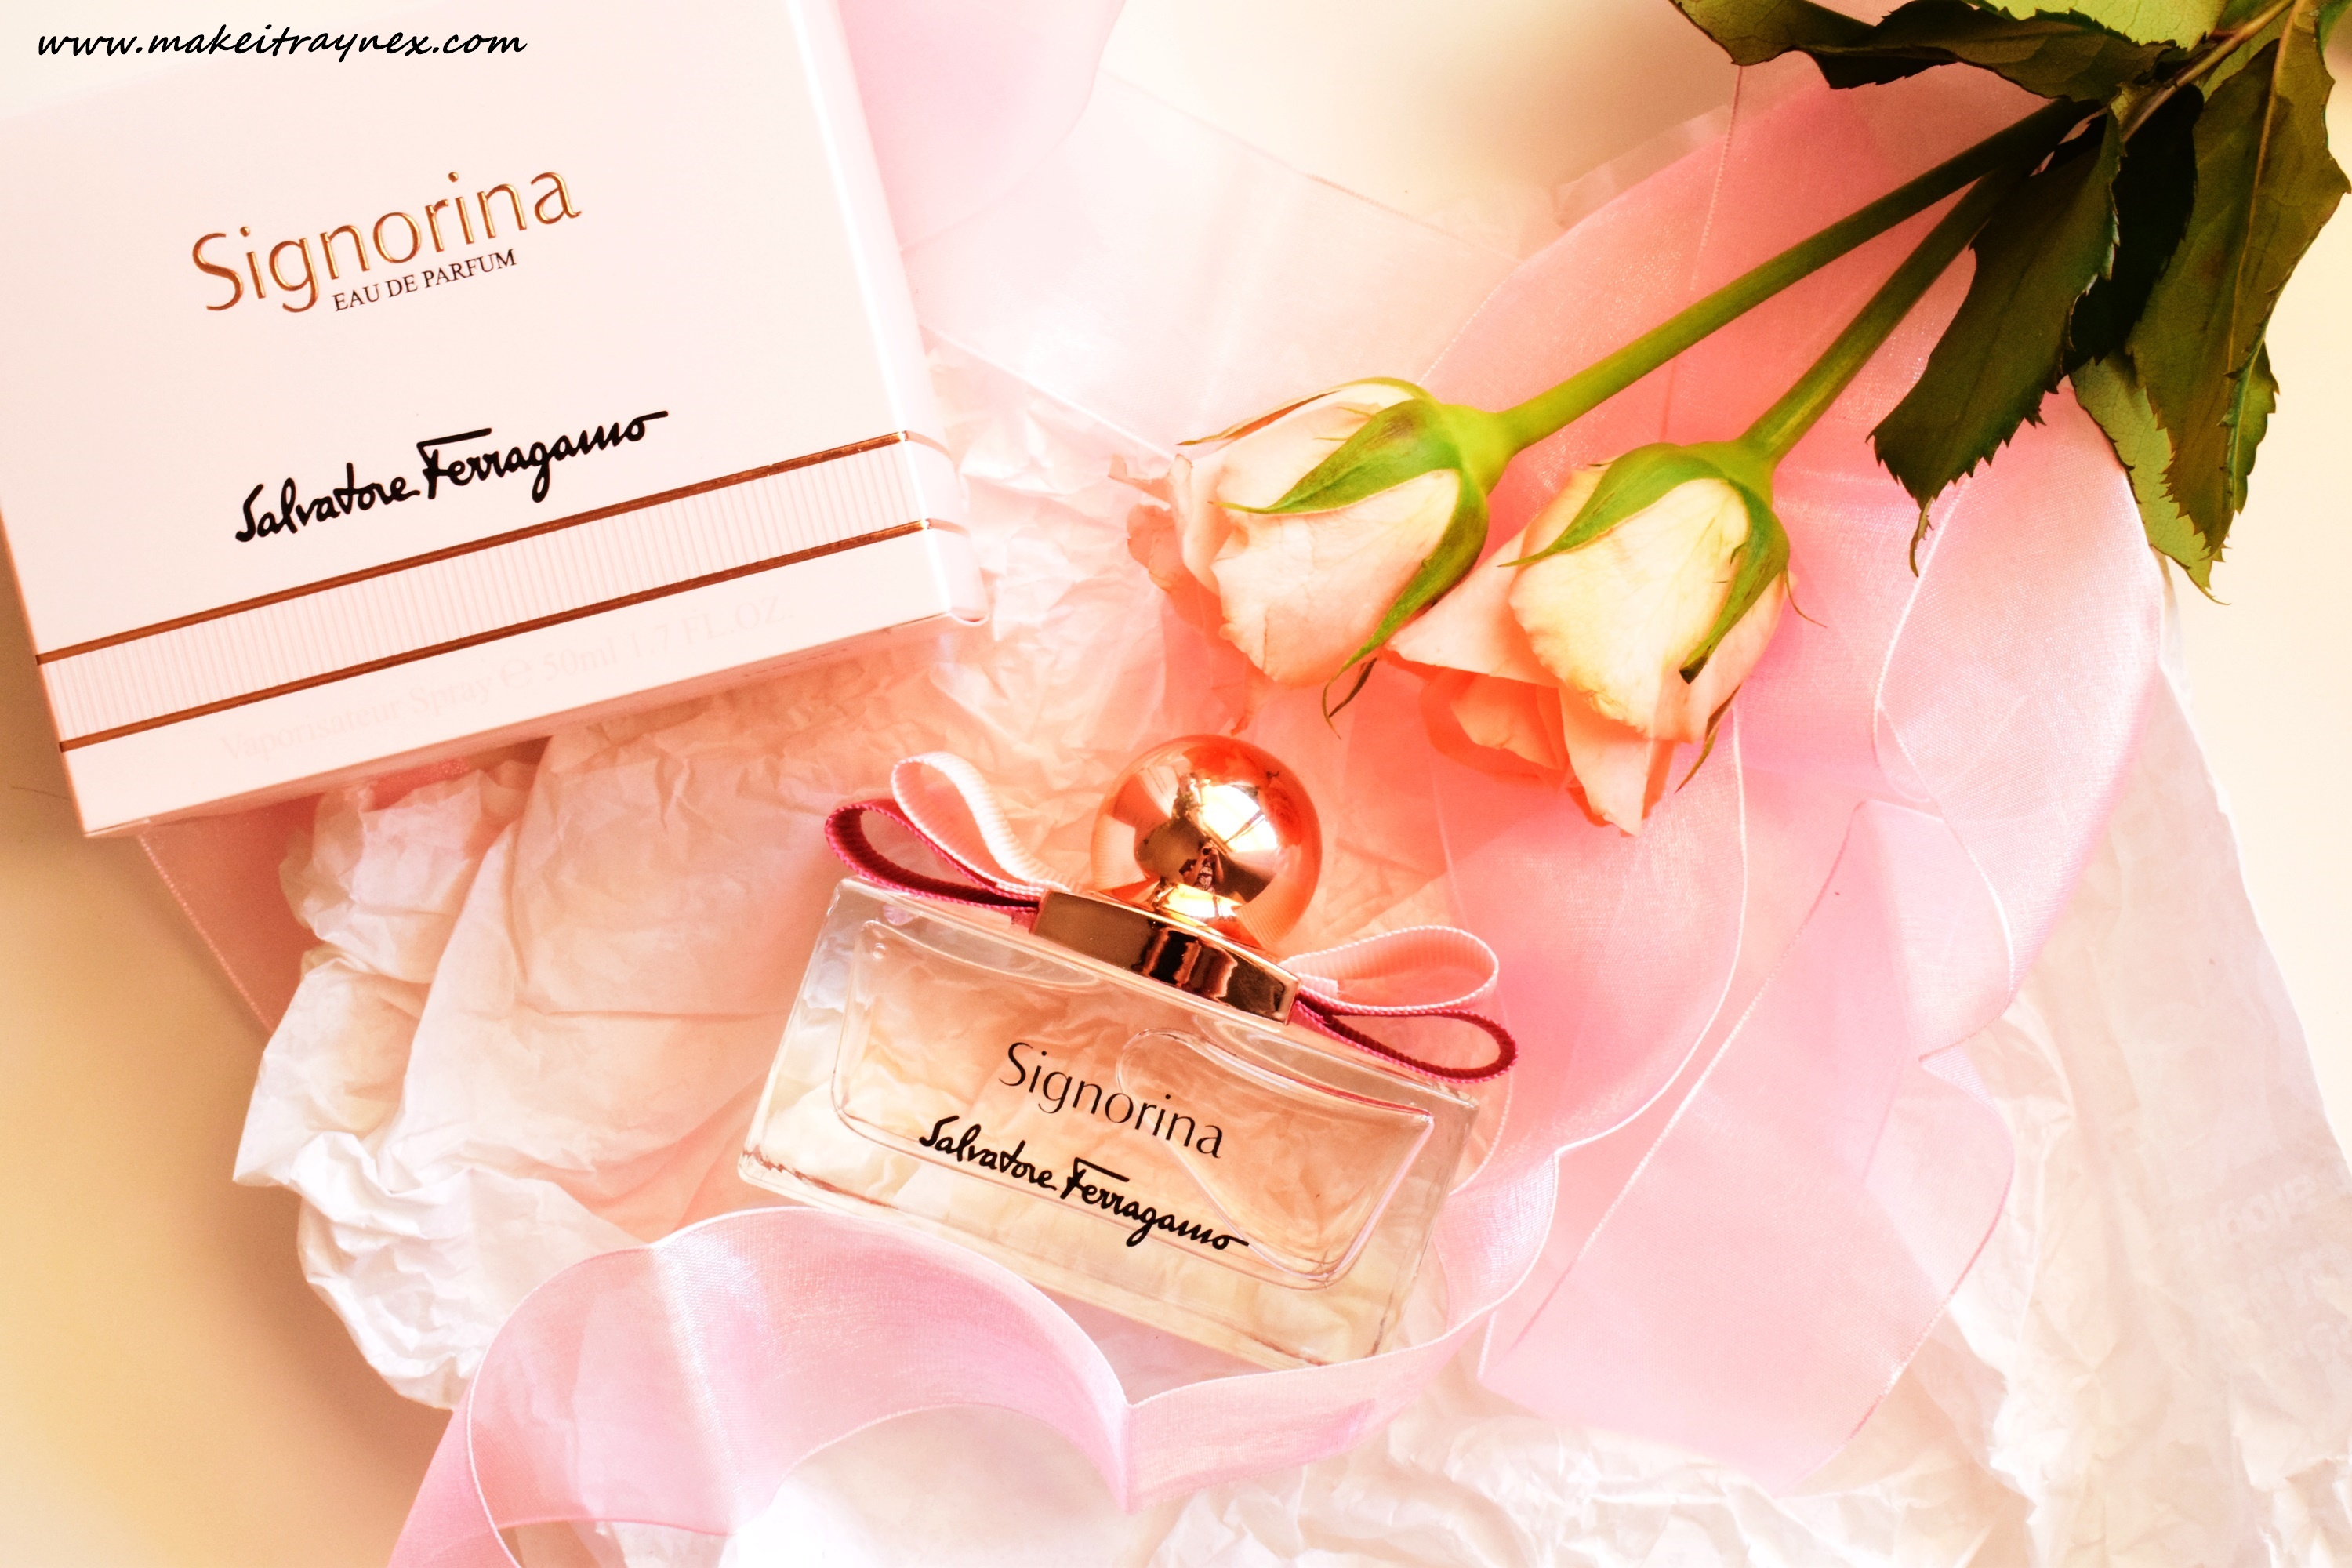 Salvatore Ferragamo fragrances are now available on South African shores! {THE FRAGRANCE CHRONICLES}